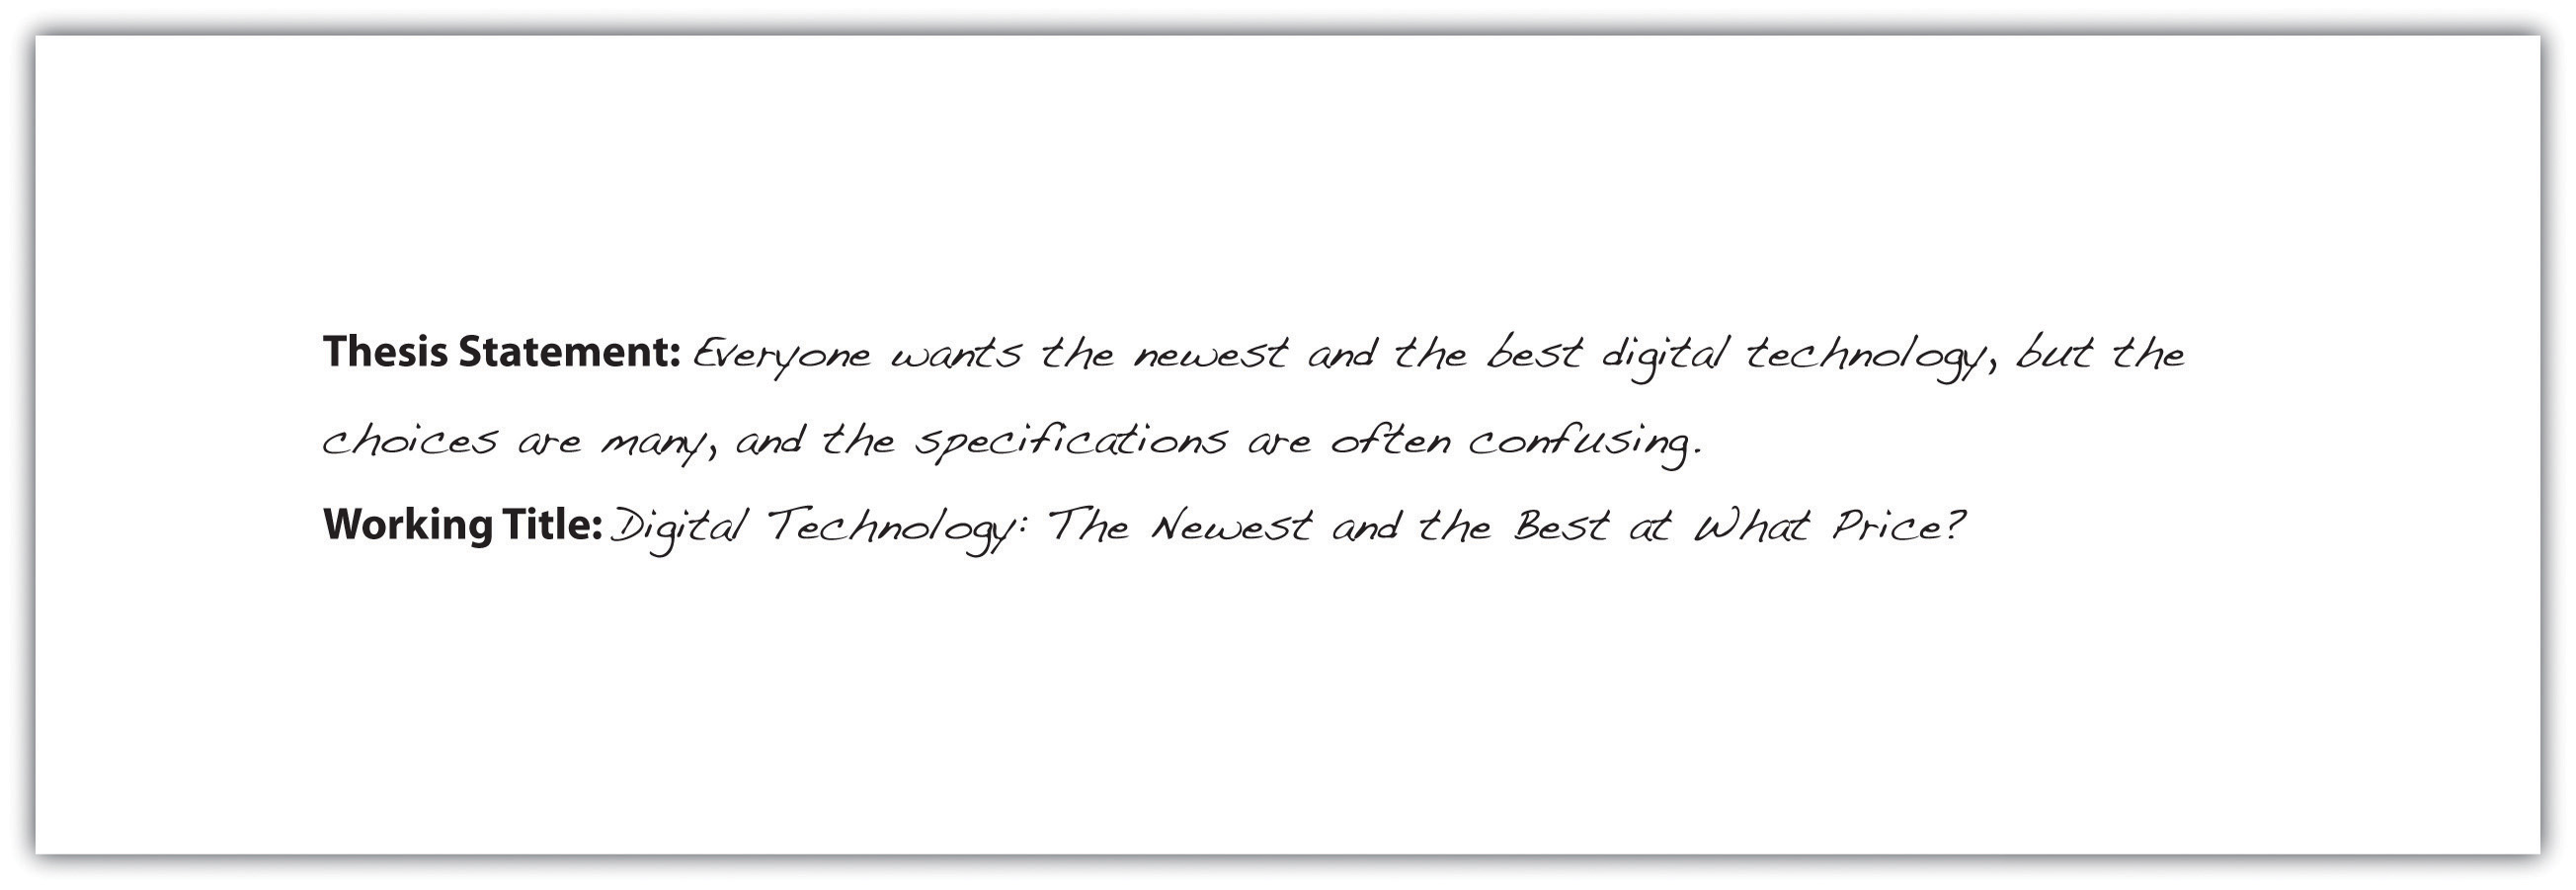 Thesis Statement: Everyone wants the newest and the best digital technology, but the choices are many, and the specifications are often confusing. Working Title: Digital Technology: The Newest and the Best at What Price?